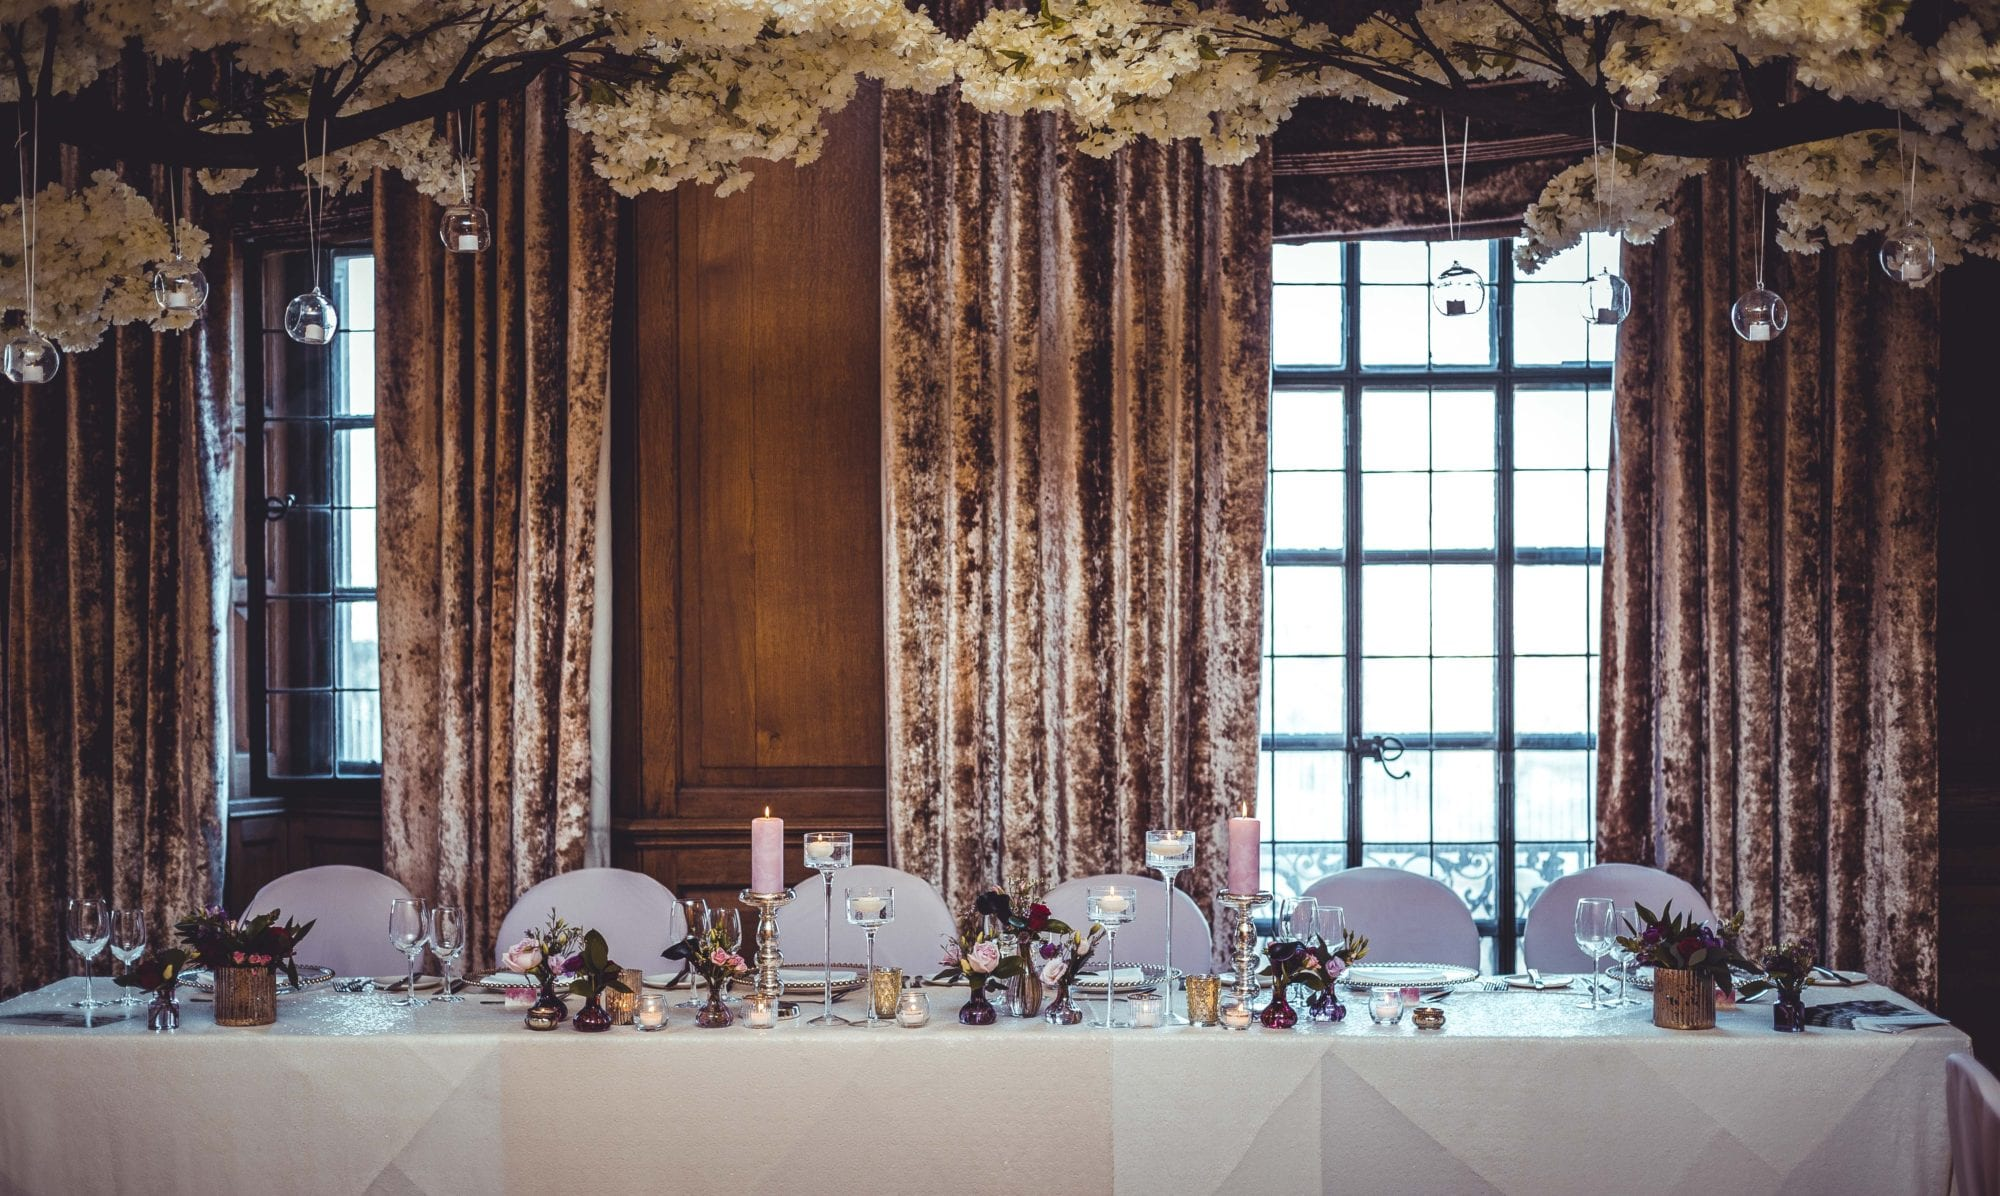 The Grand Wedding Head Table